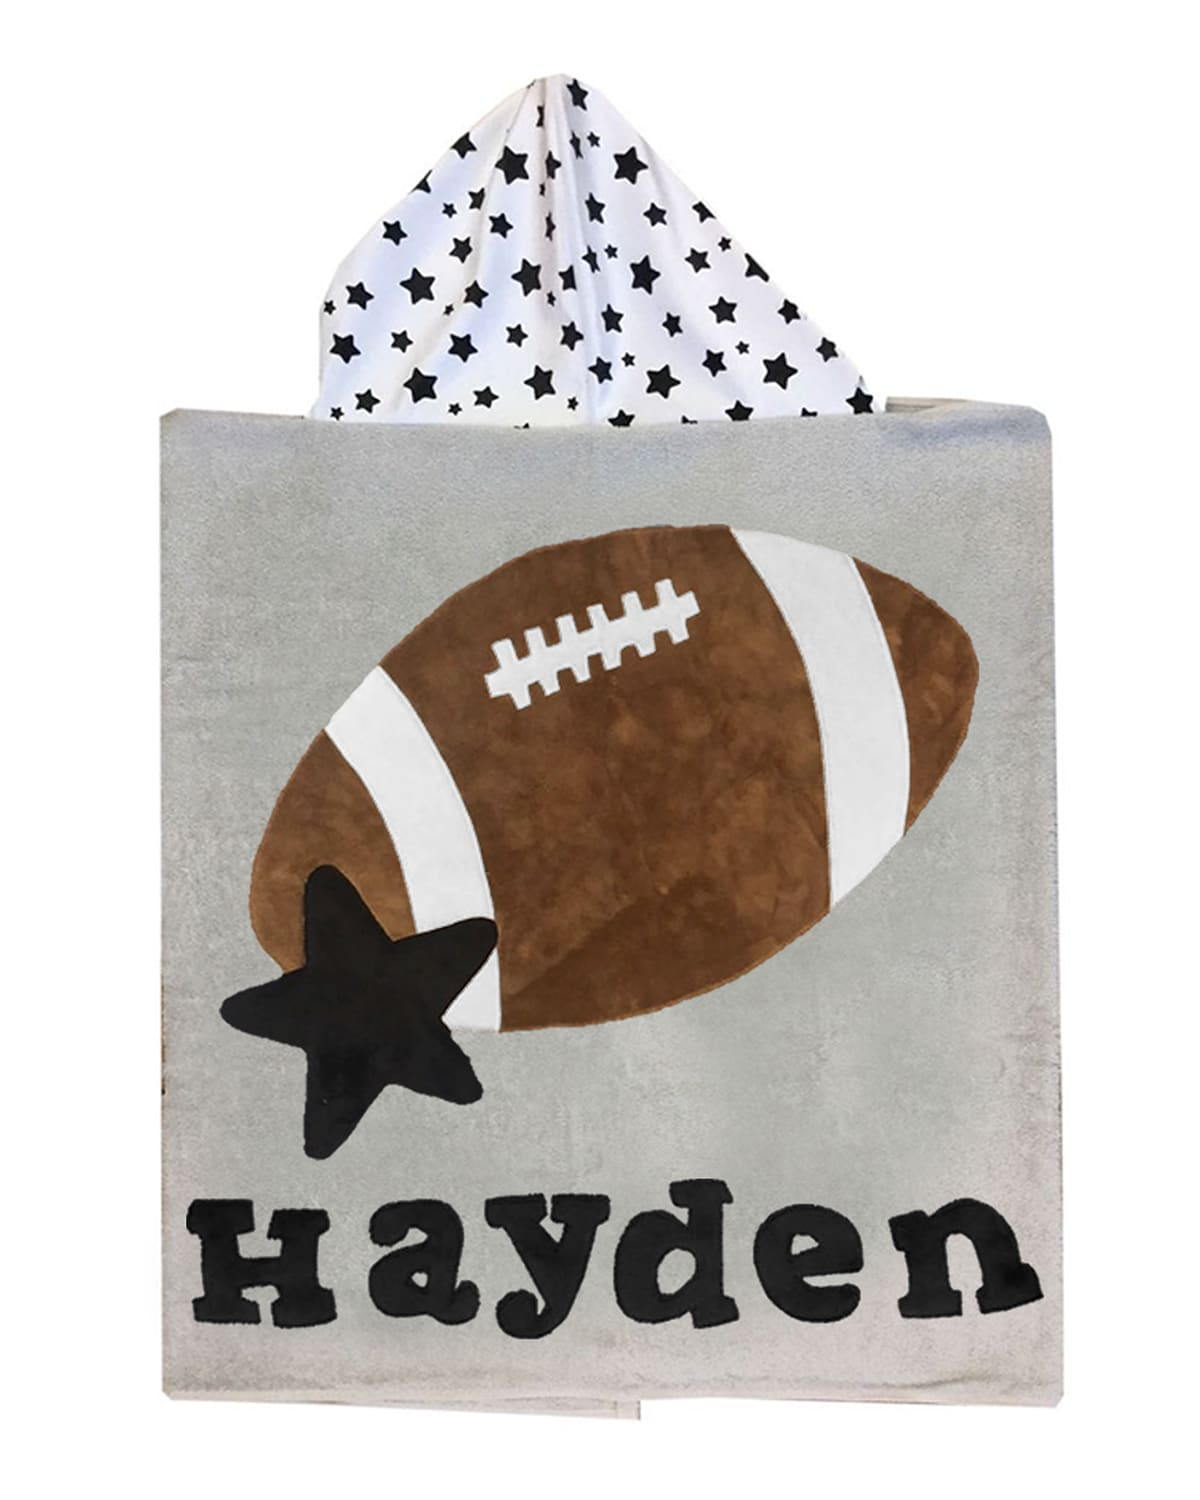 Boogie Baby Kid's Football Star-print Hooded Towel, Personalized